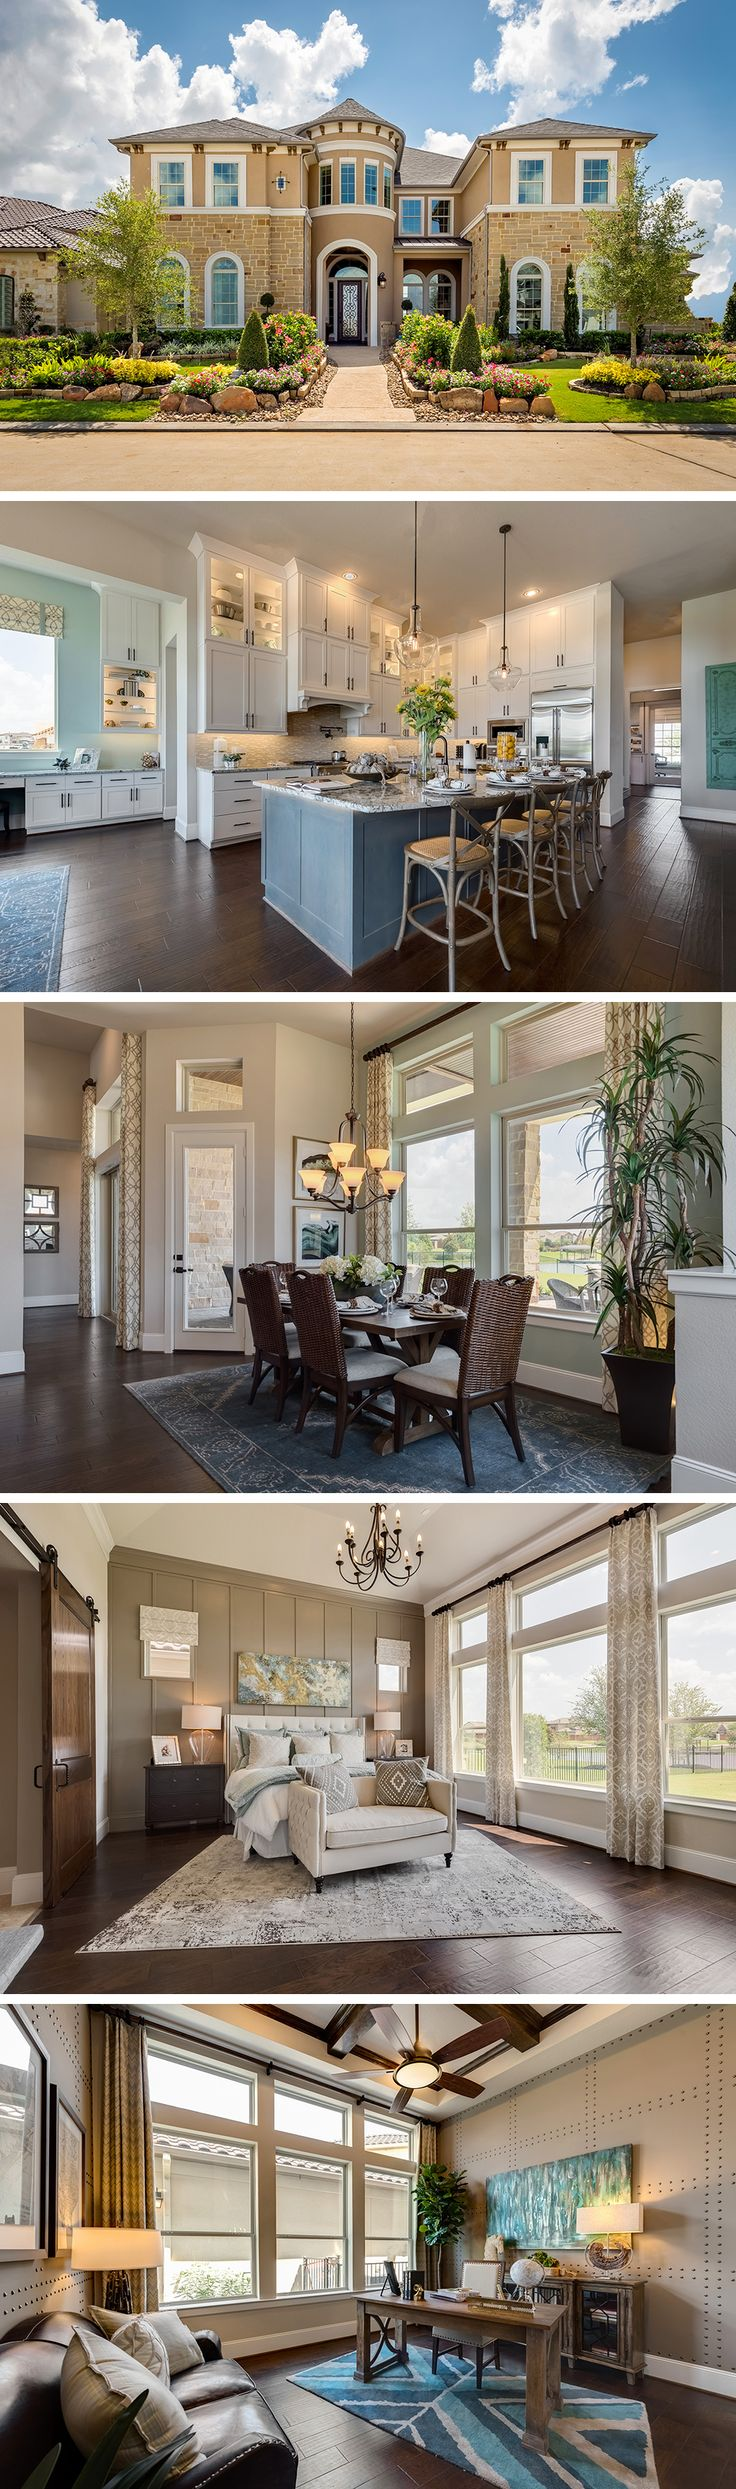 David Weekley is building award-winning homes in the beautiful community of Towne Lake- Sunset Harbor located in Cypress, TX. Here you will find a energy-efficient homes and a recreation center with tennis courts and fitness rooms. The Ashgrove offers 5 bedrooms and 5 full bathrooms, a 3 car garage, and 4957 square feet of spacious living areas. Visit our website to learn more about this home and the community of Towne Lake- Sunset Harbor.